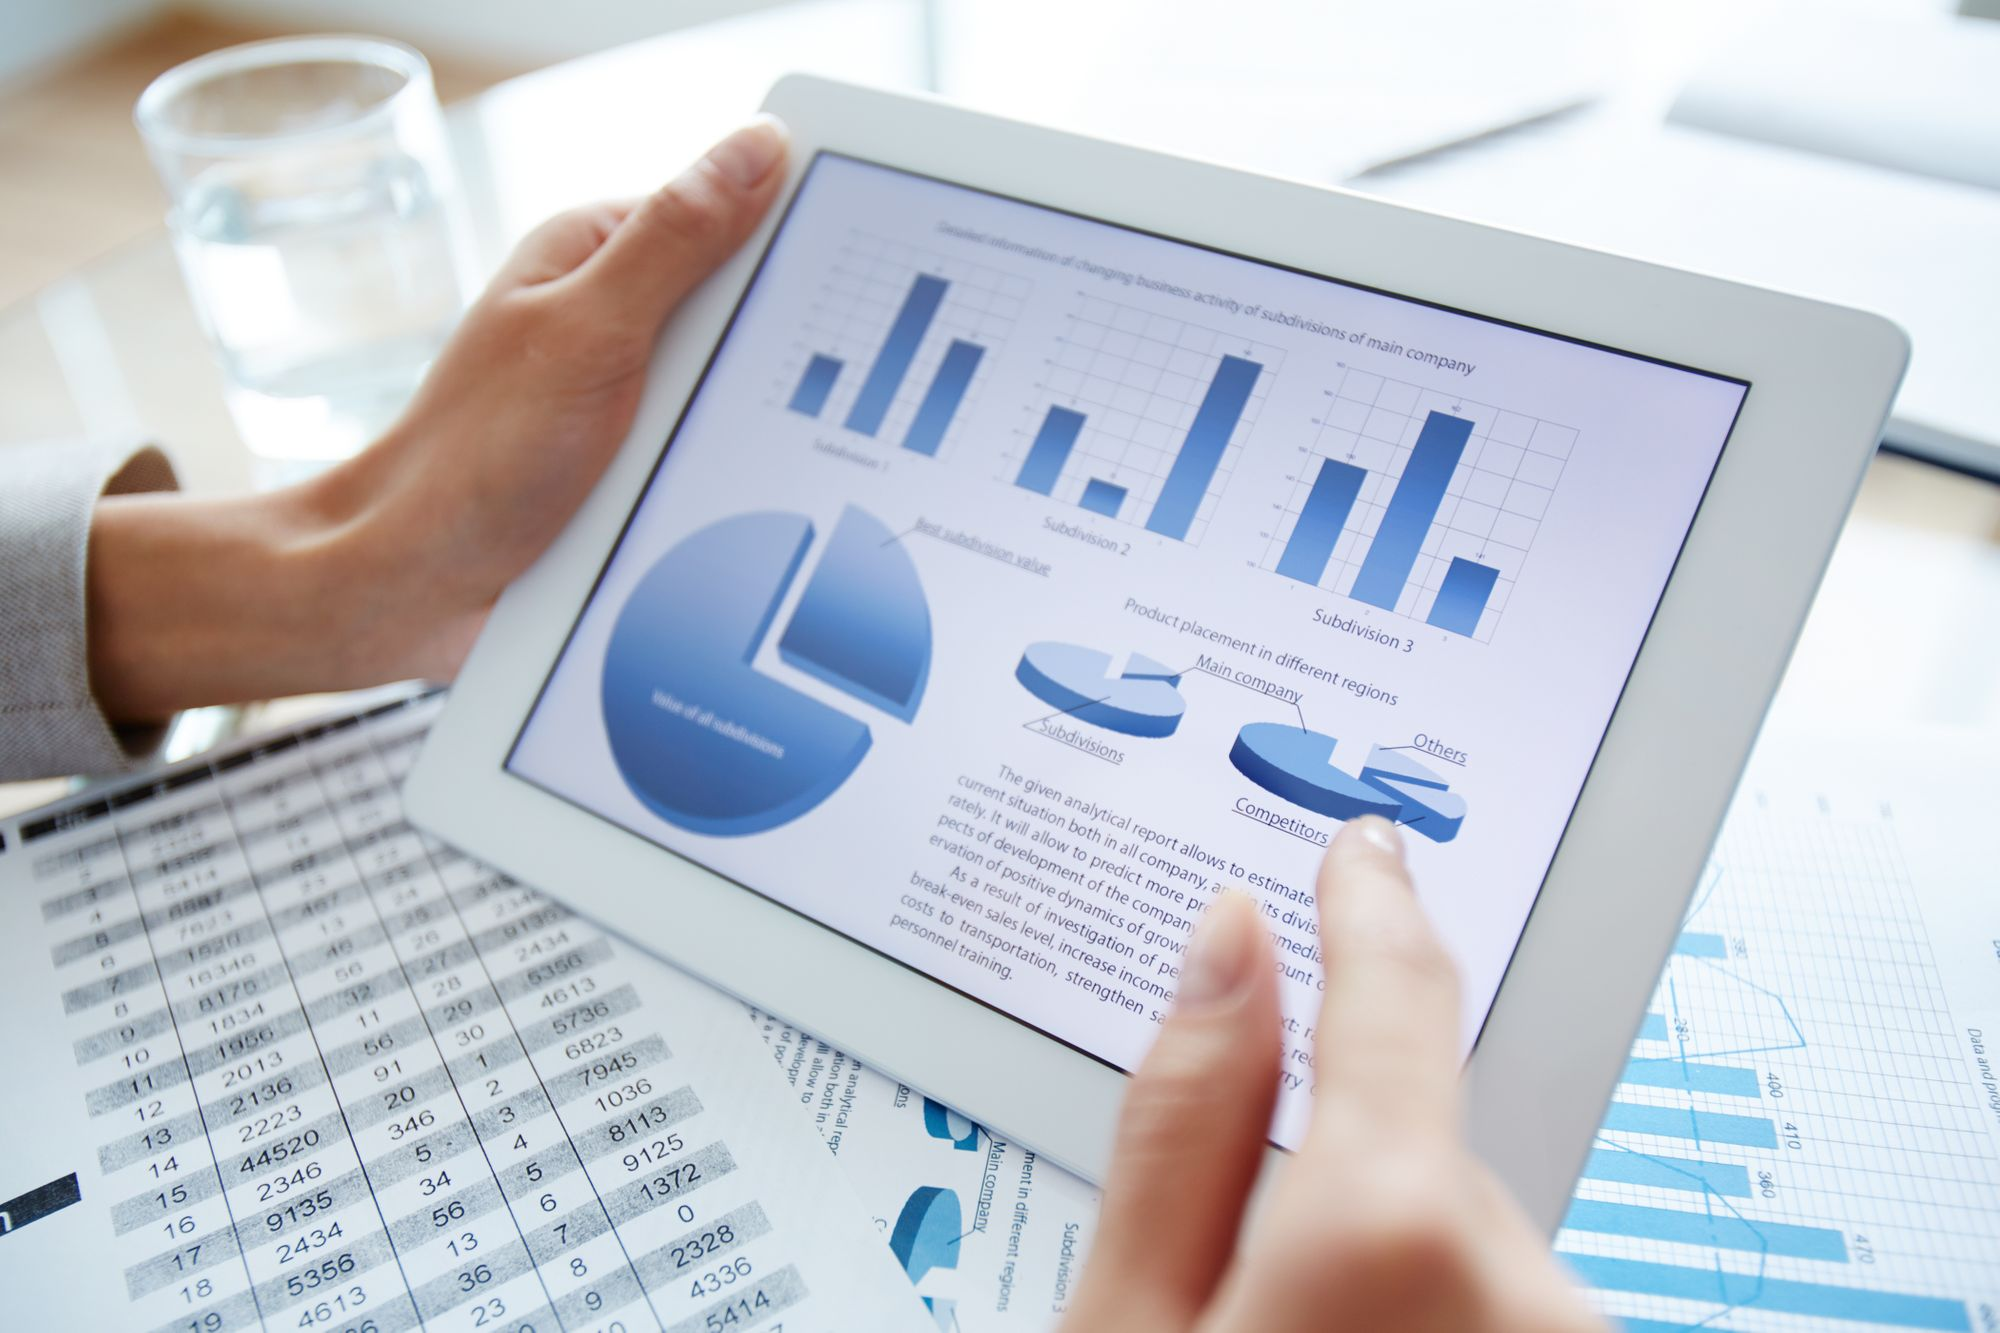 Online presentation tools can help you create polished client presentations